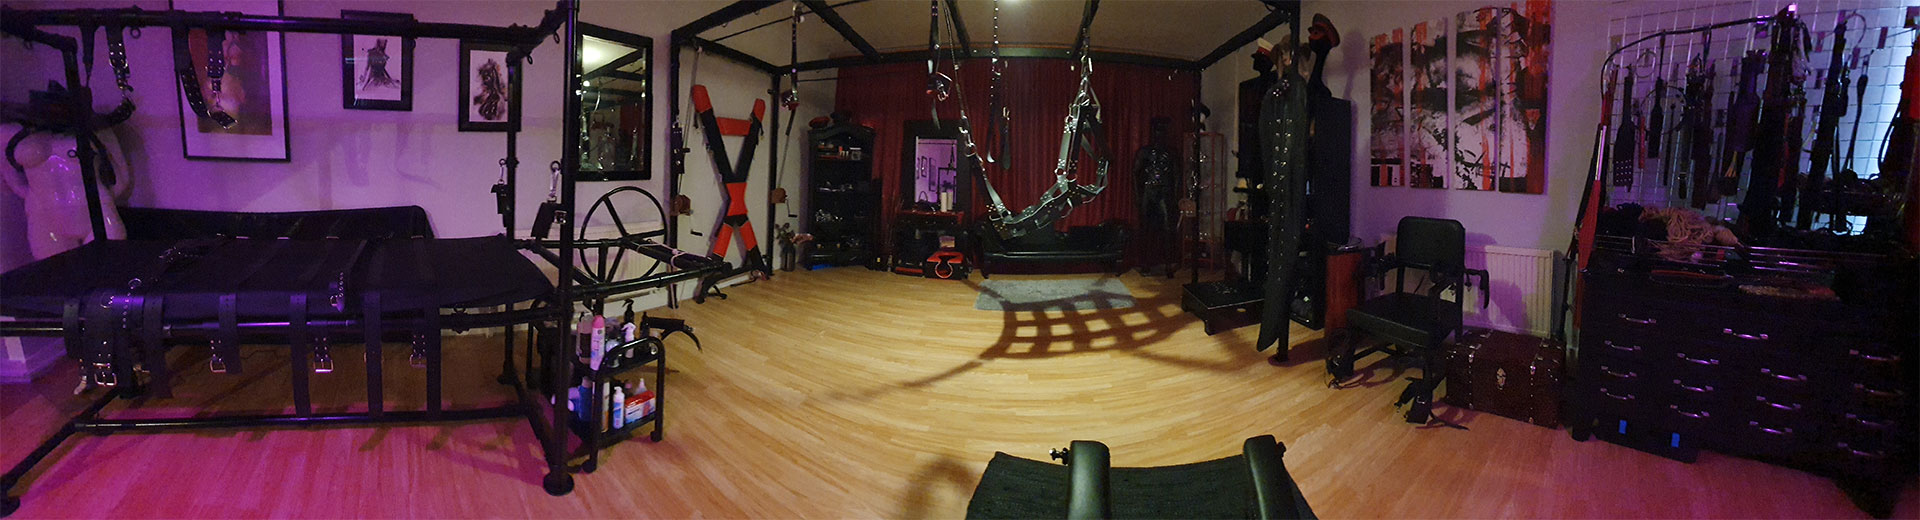 State of the Art Fetish and BDSM Studio in London